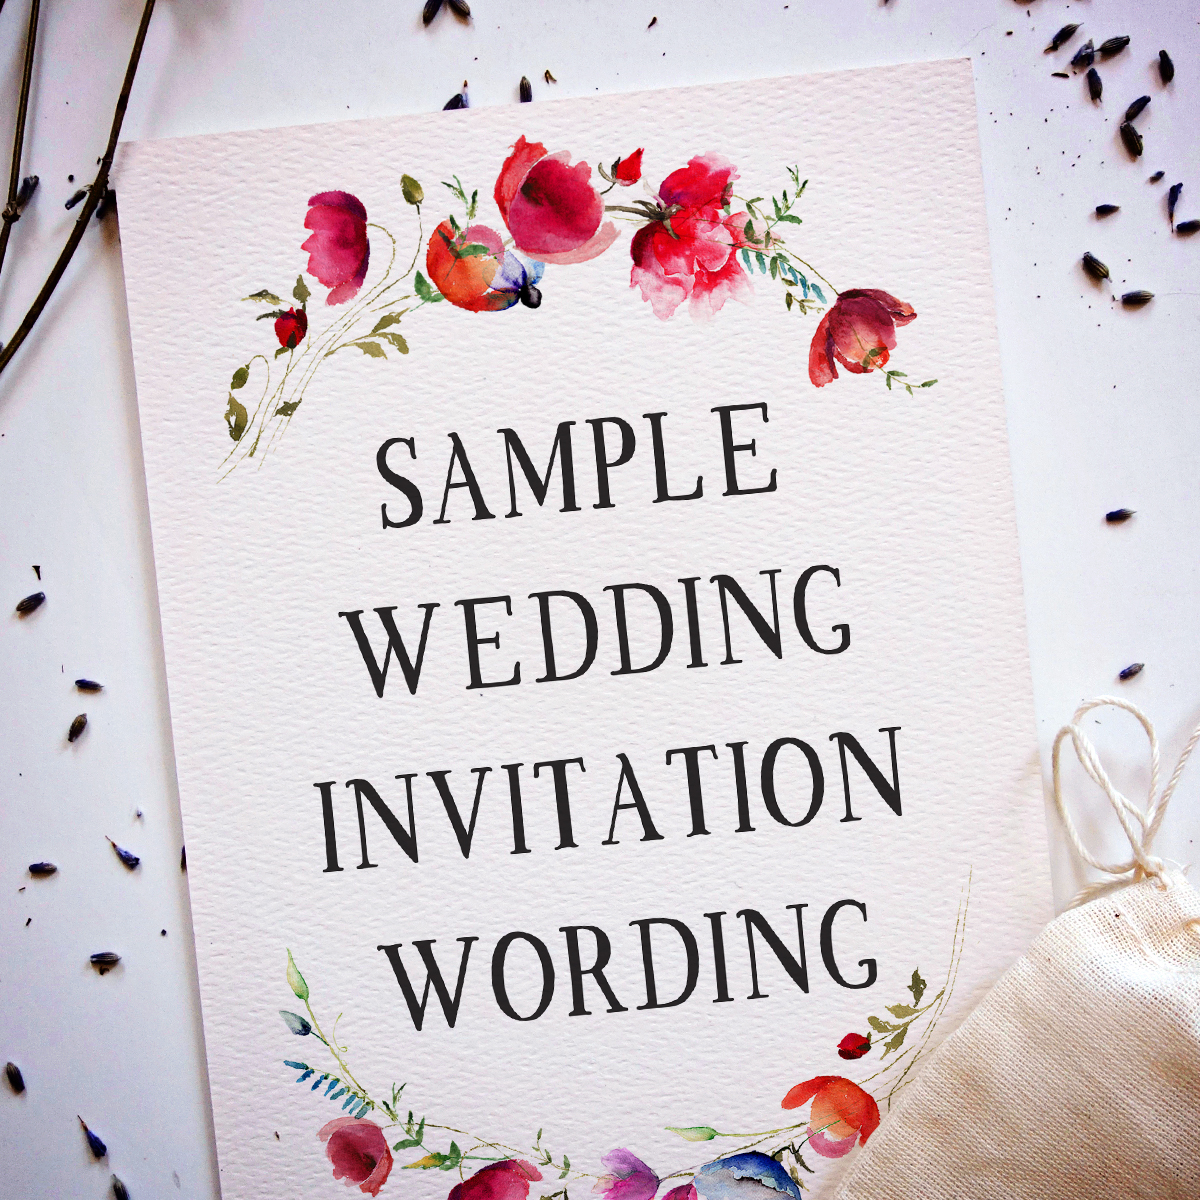 Wedding Wording Samples And Ideas For Indian Invitations 2016